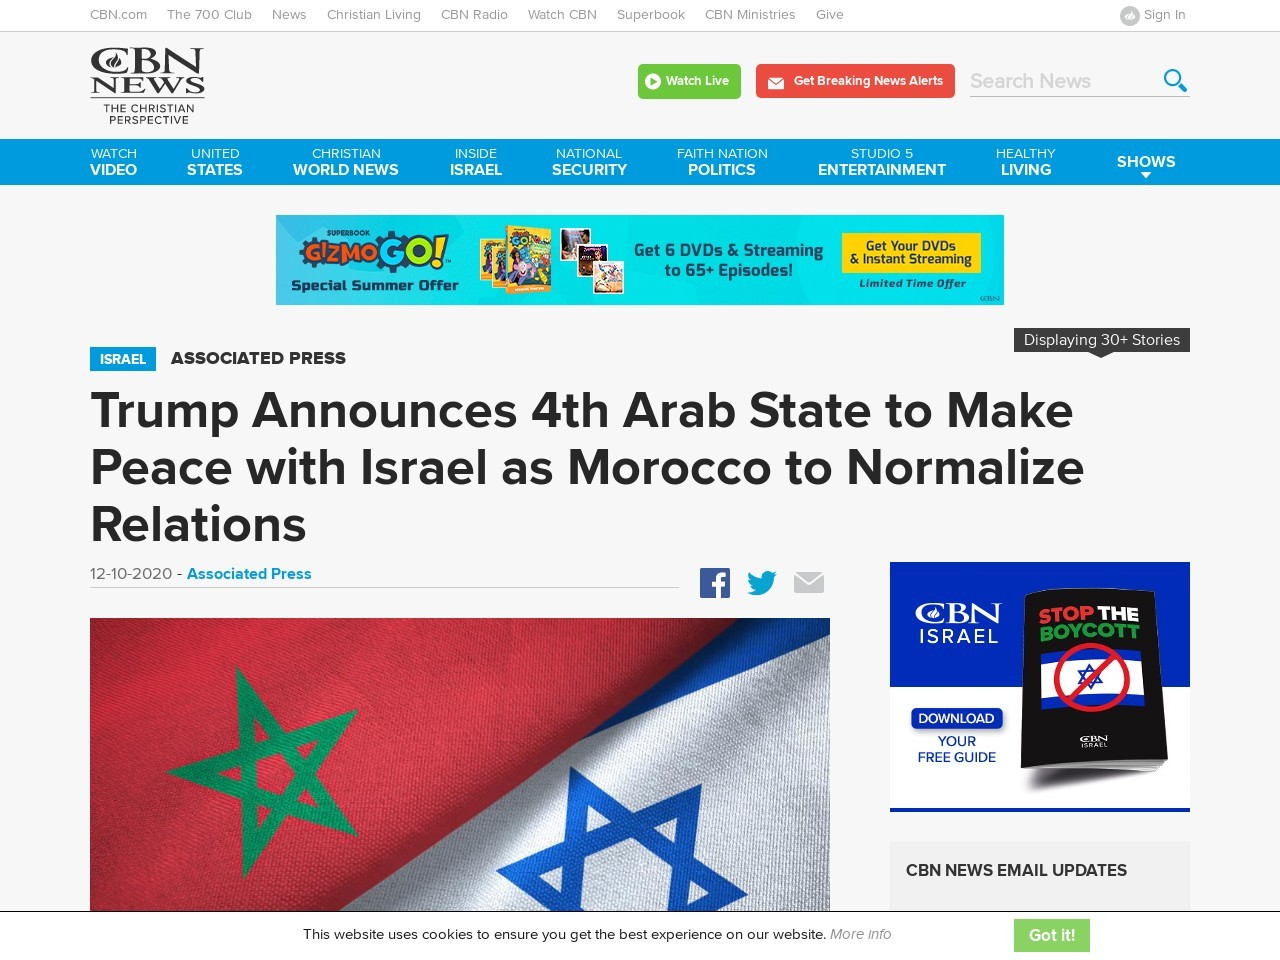 Trump Announces 4th Arab State to Make Peace with Israel as Morocco to Normalize Relations